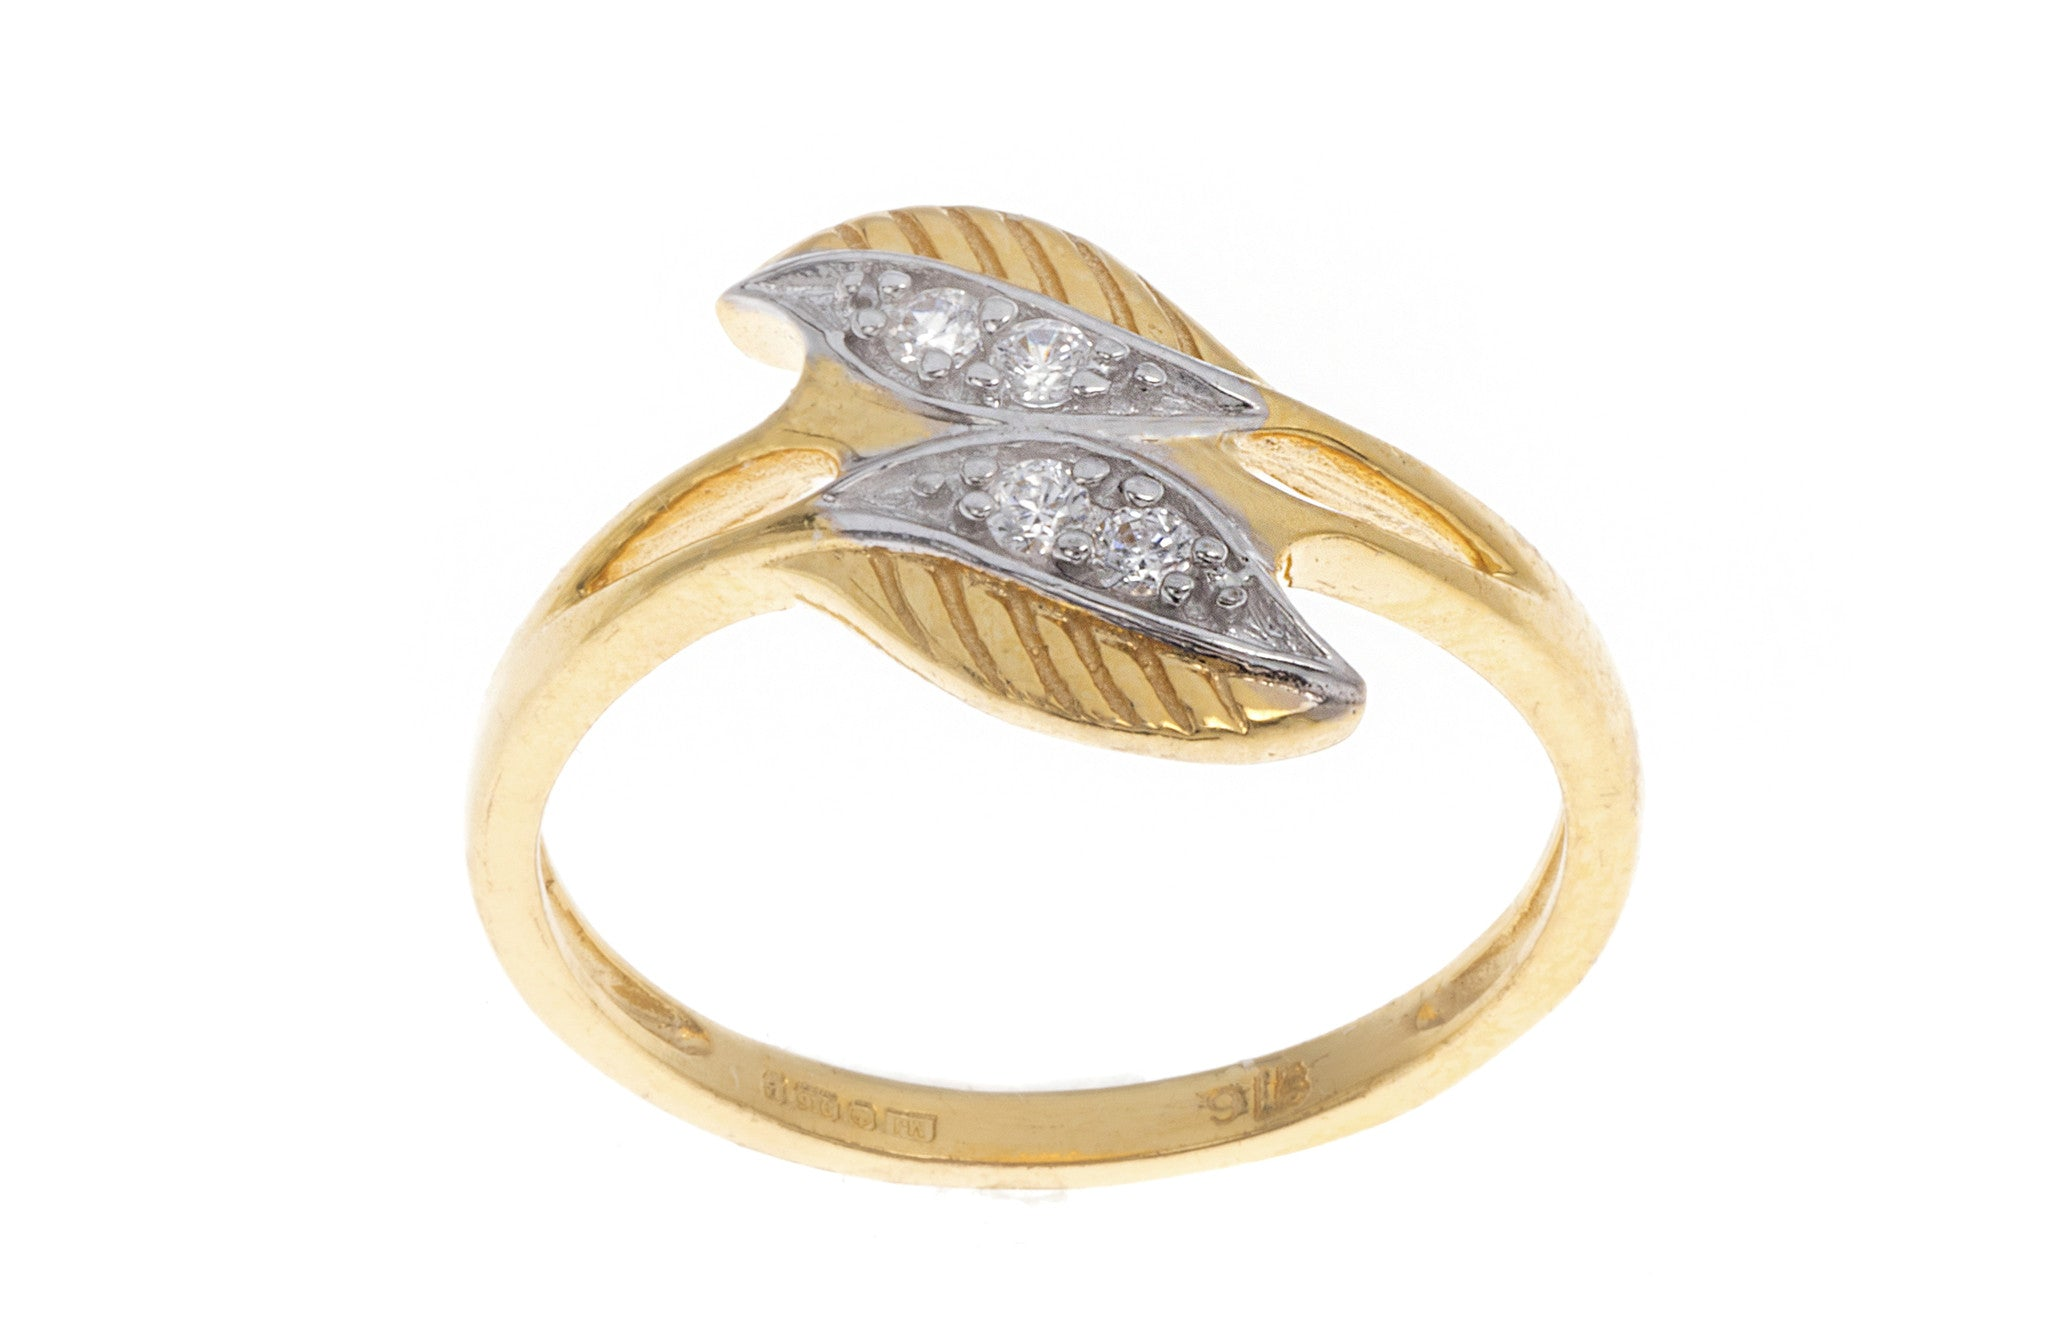 22ct Yellow Gold Double Leaf Dress Ring set with Cubic Zirconias, Minar Jewellers - 4